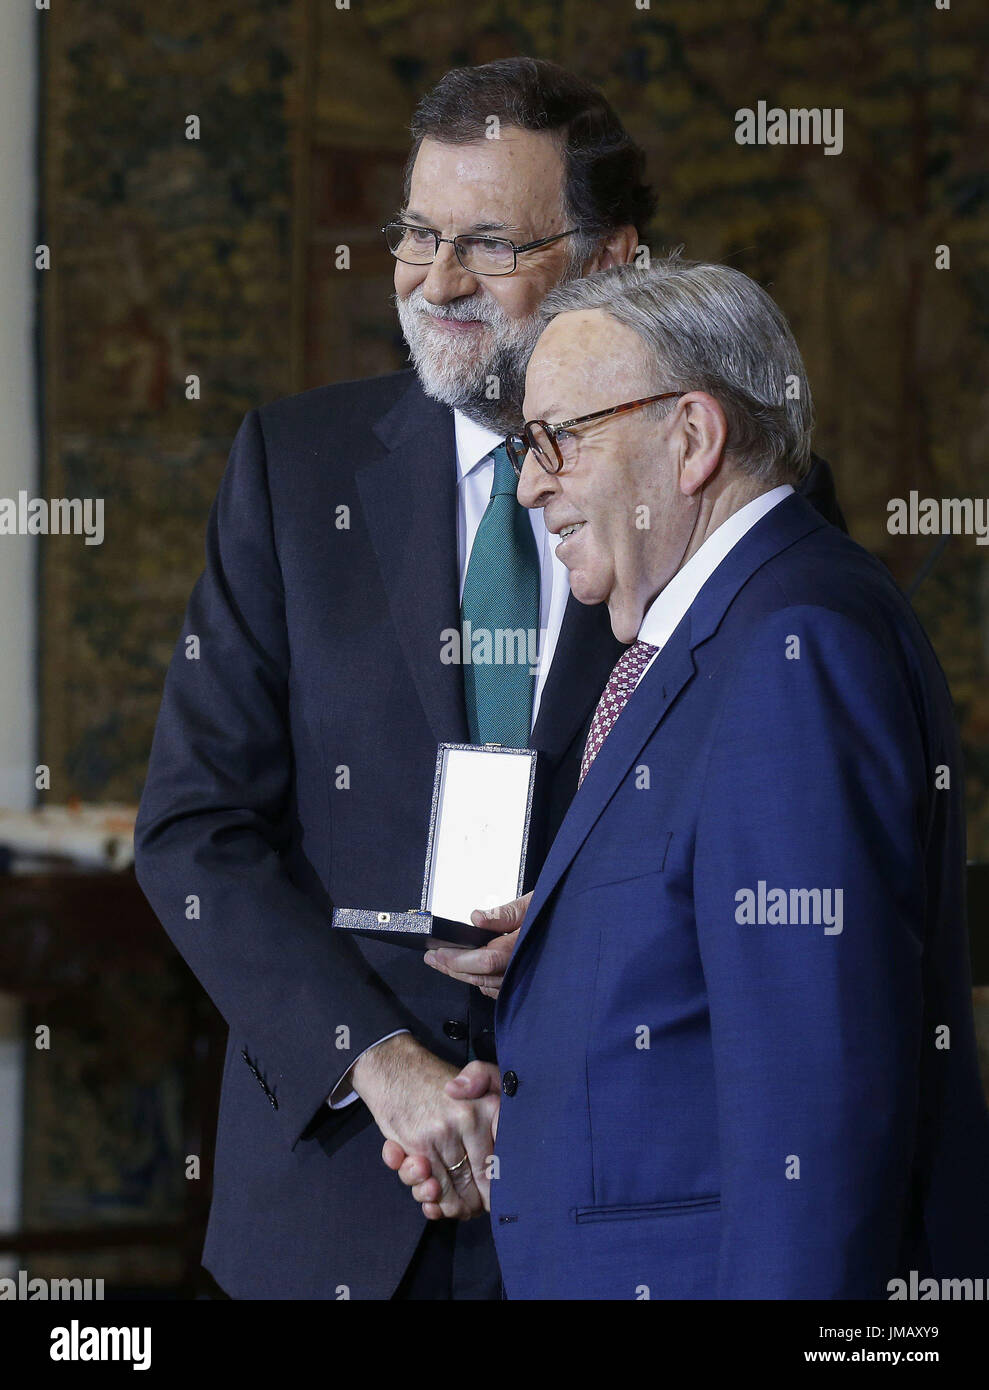 Madrid, Spain. 27th July, 2017. Spanish Prime Minister, Mariano Rajoy (L), grants the Gold Medal of Merit in Work to Spanish saxophonist Pedro Iturralde during the Gold Medal of Merit in Work handover ceremony held at the Palace of la Moncloa in Madrid, Spain, 27 July 2017. EFE/Paco Campos Credit: EFE News Agency/Alamy Live News - Stock Image